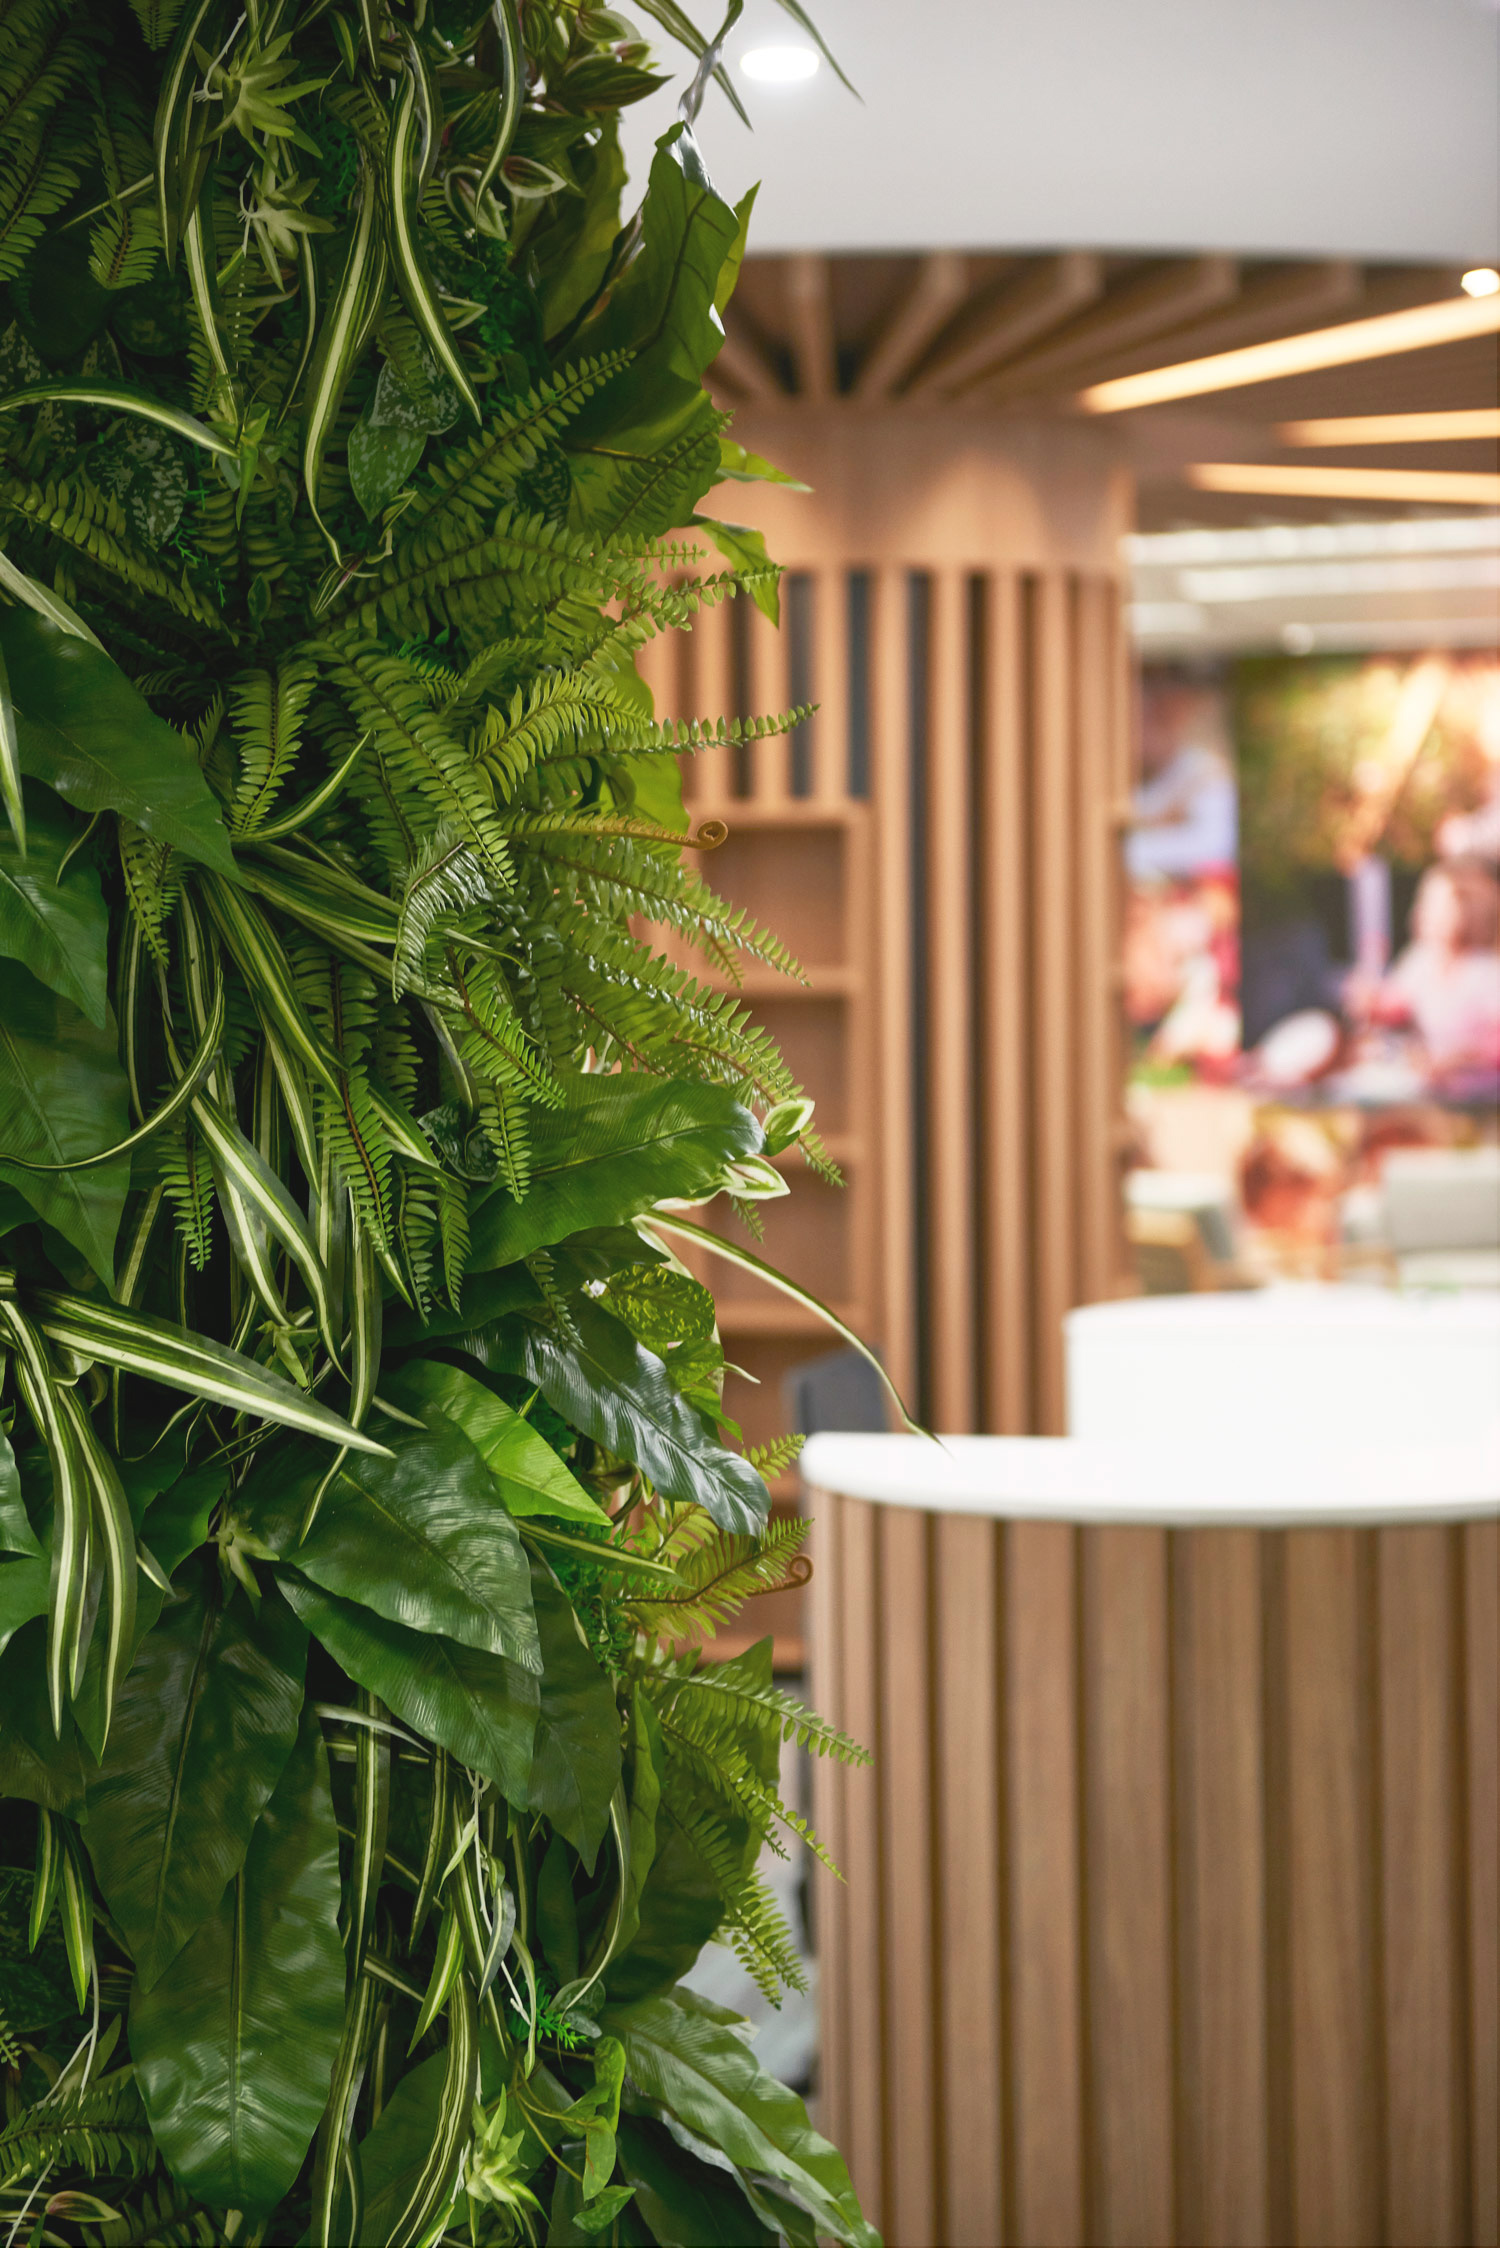 The Health and Benefits of a Vertical Garden